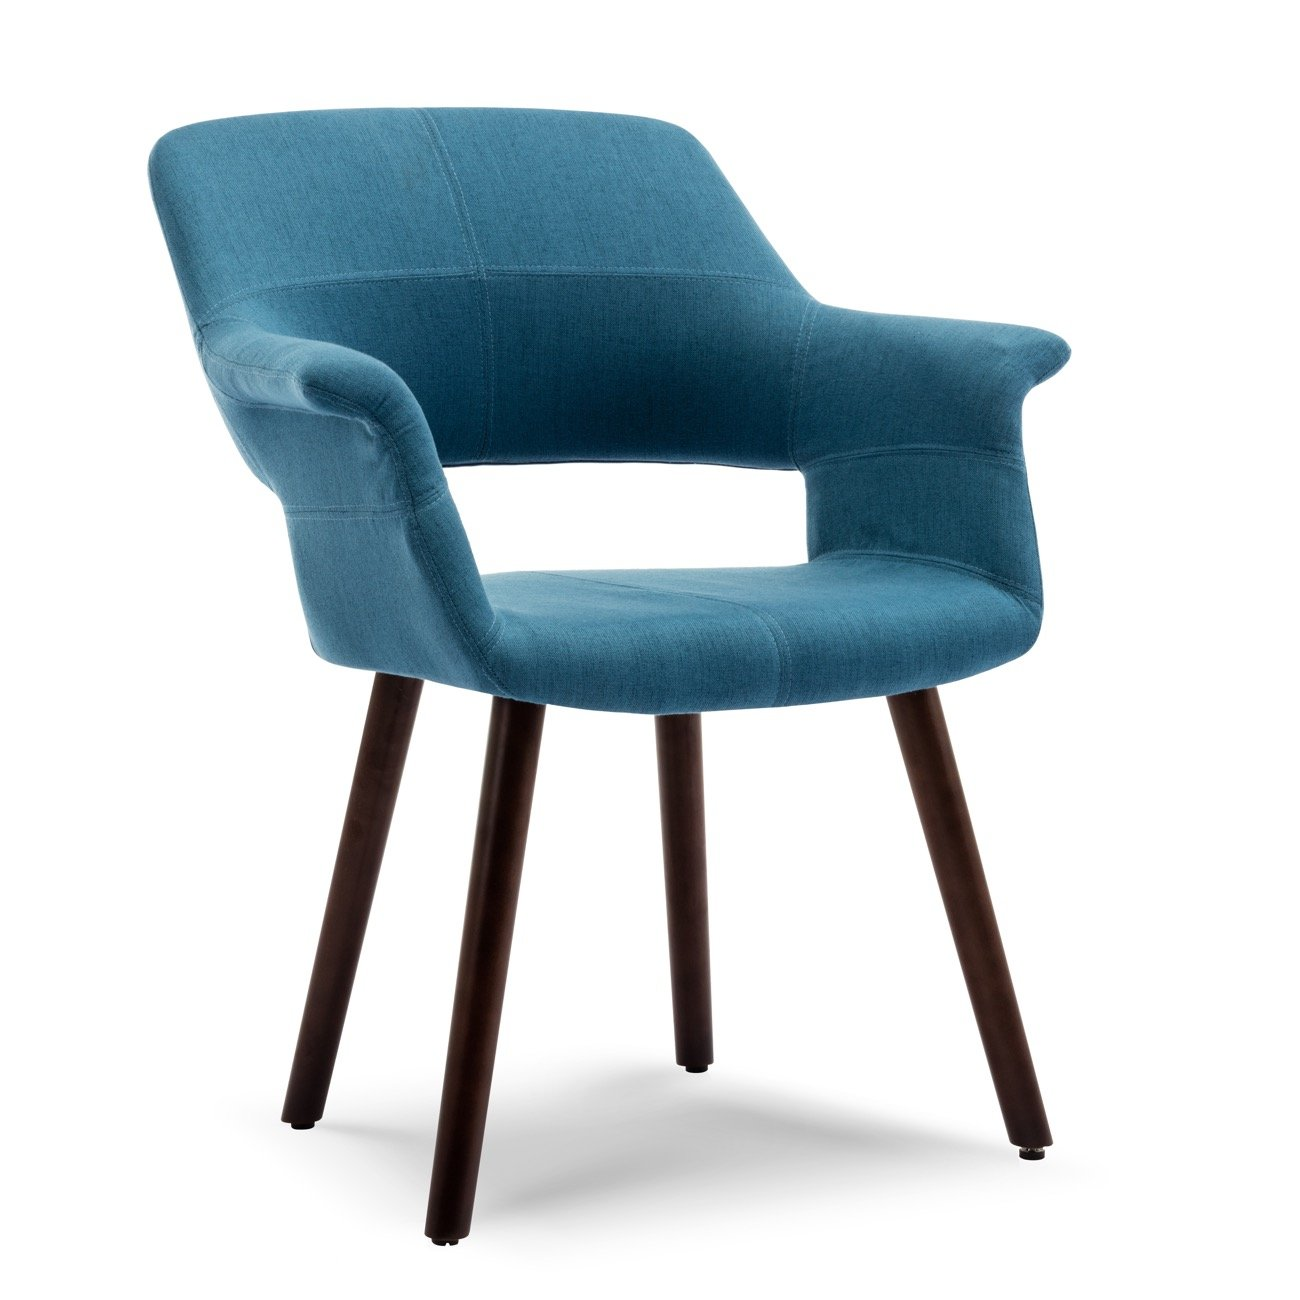 Belleze Accent Chair Living Room Armchair Linen Mid-Century Style Armrest Curved w/Wooden Leg, Blue